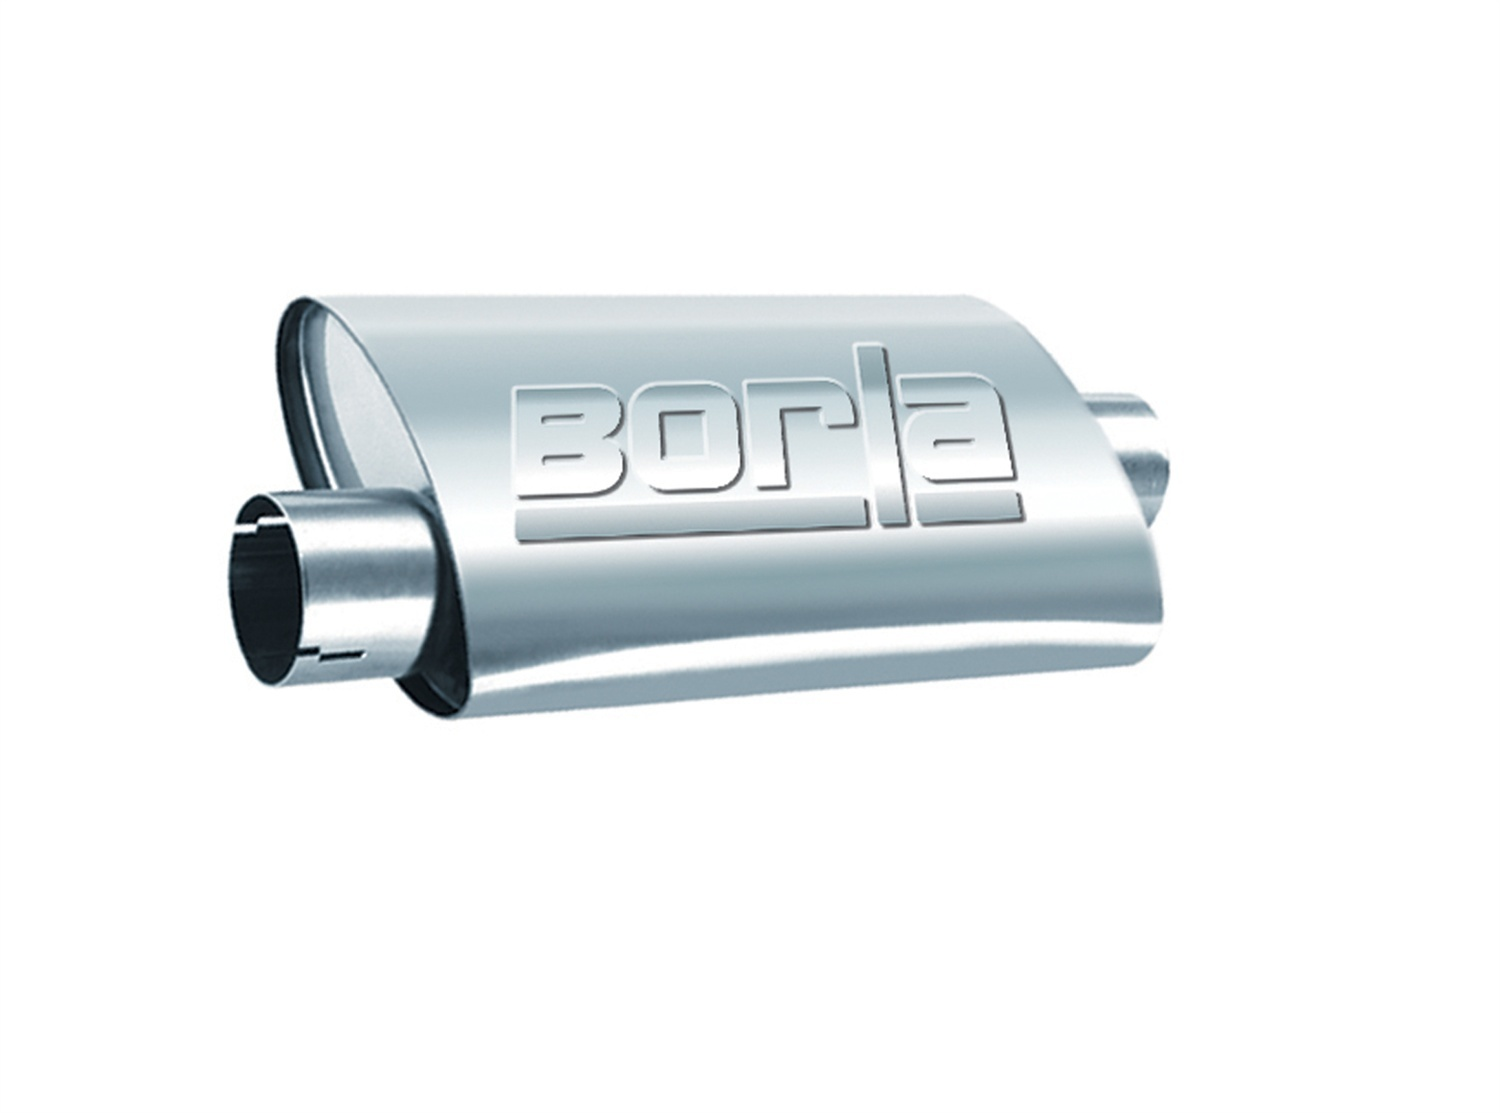 Borla 40659 Muffler, ProXS, 2-1/2 in Offset Inlet, 2-1/2 in Center Outlet, 14 x 4-1/4 x 7-7/8 in Oval Body, 18 in Long, Stainless, Natural, Universal, Each